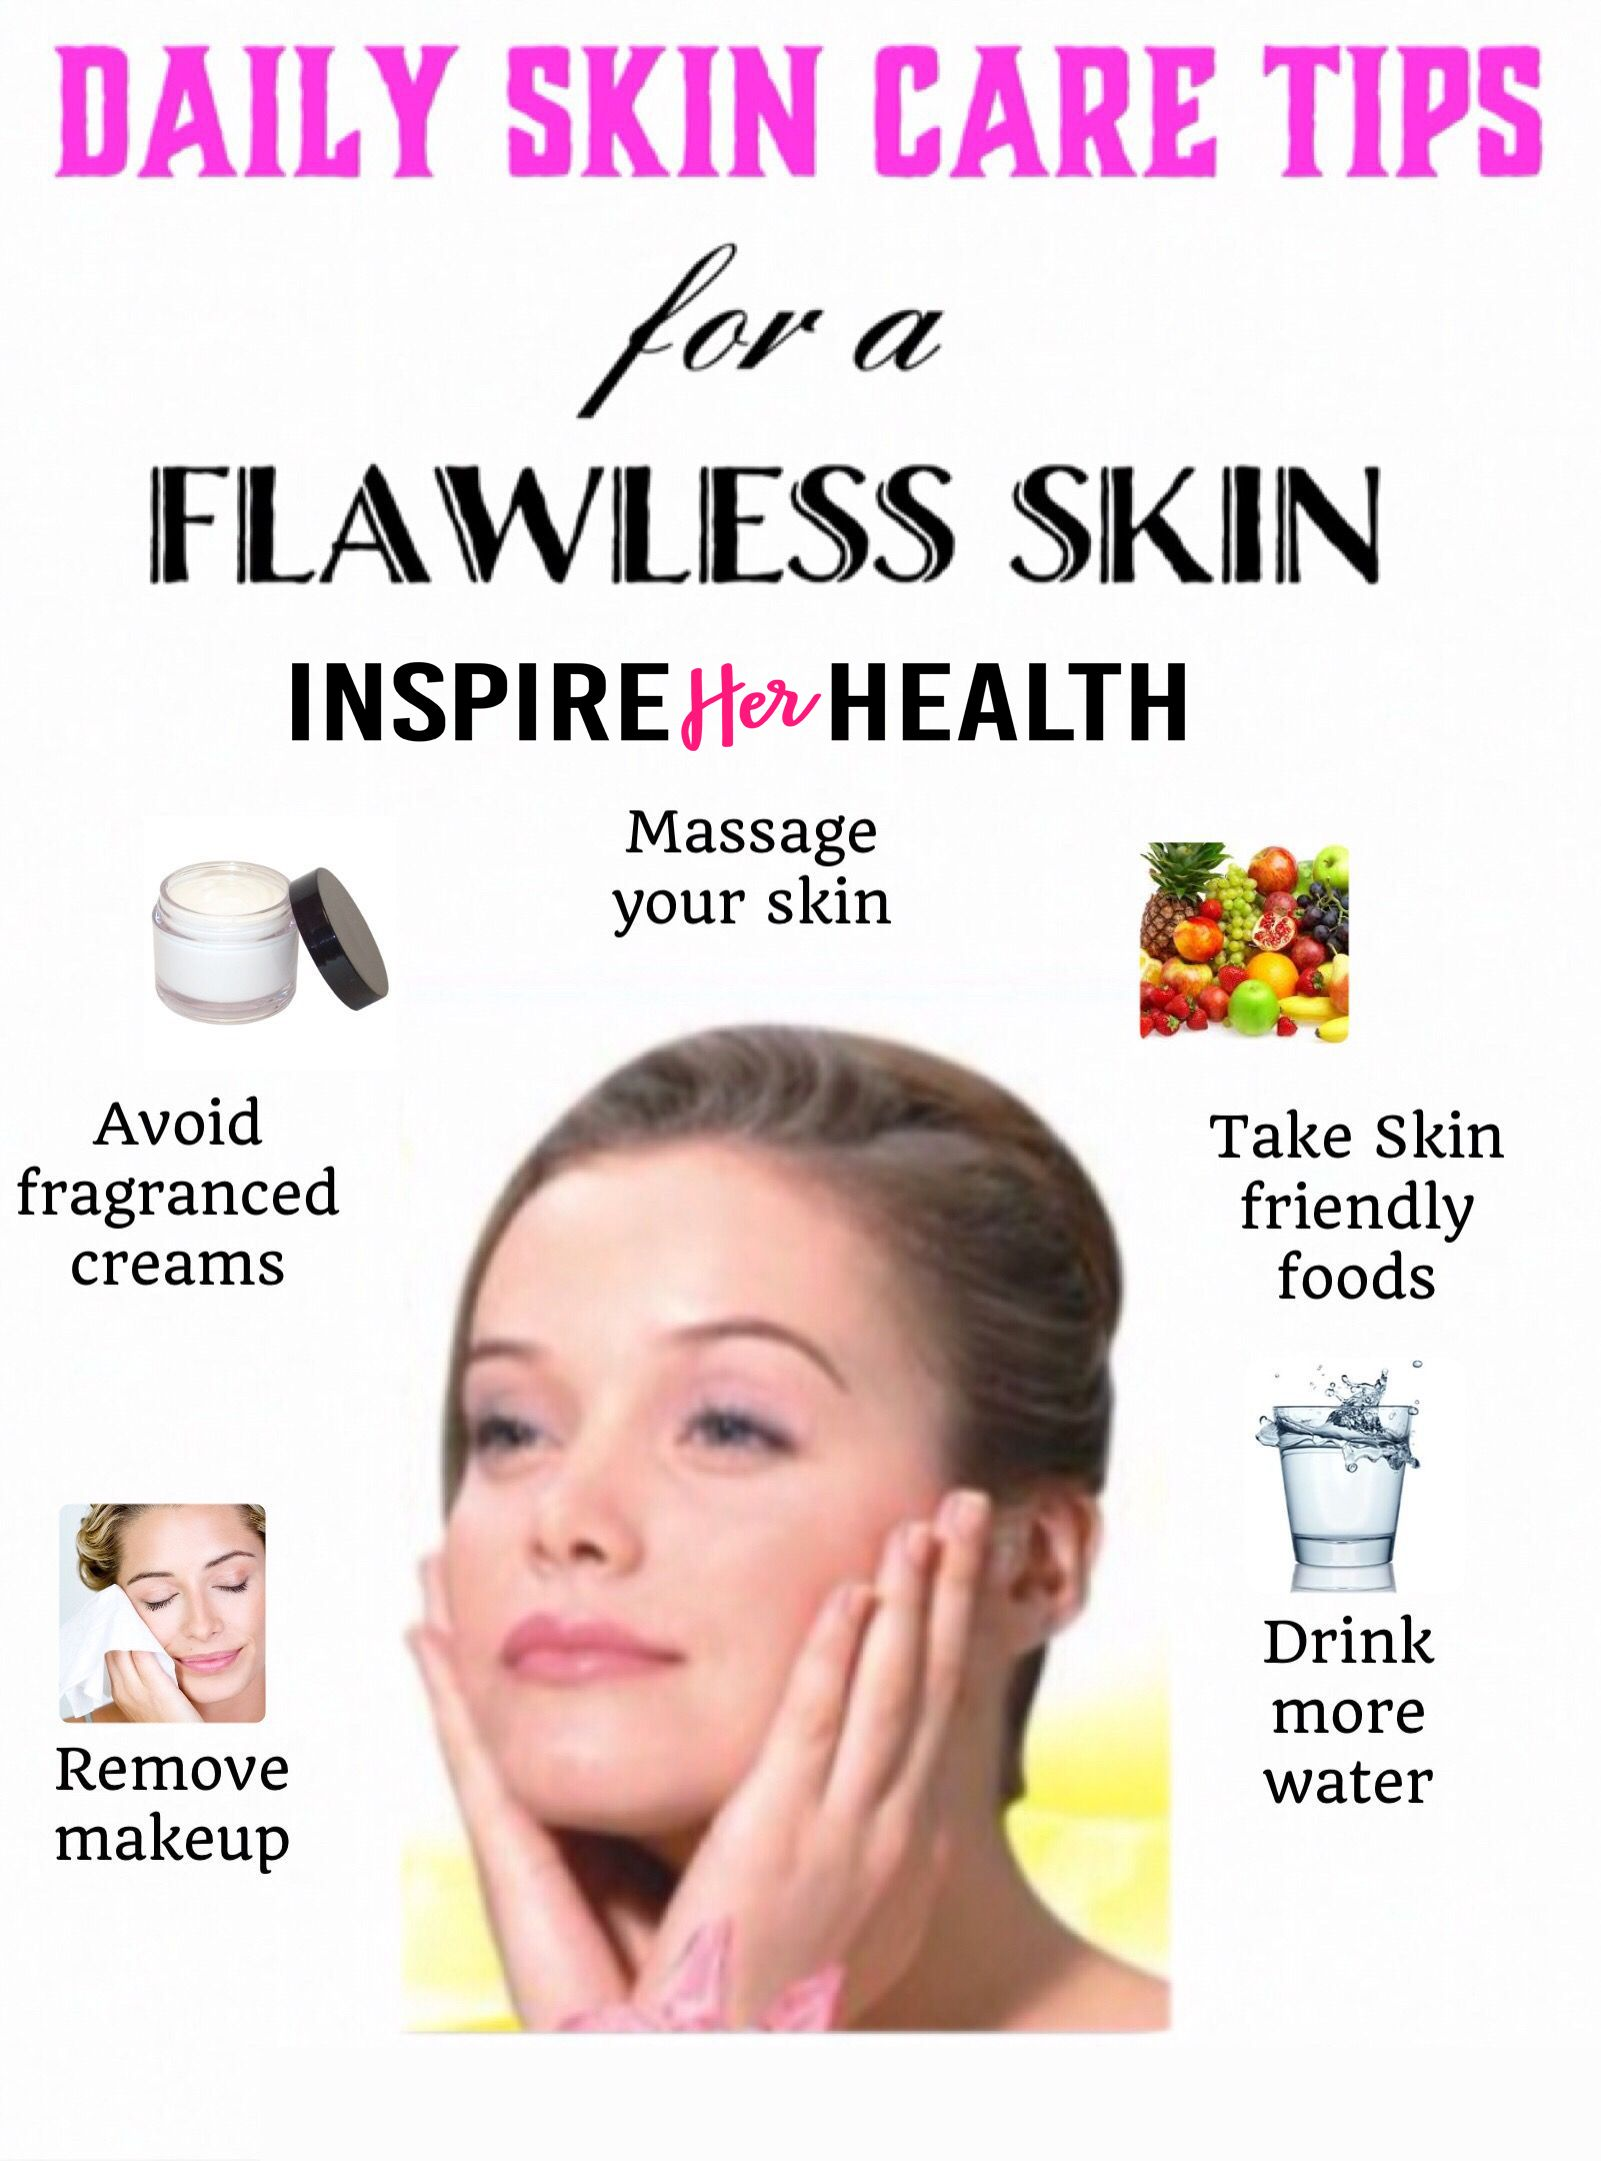 Daily skin care tips in 9  Daily skin care, Skin care tips